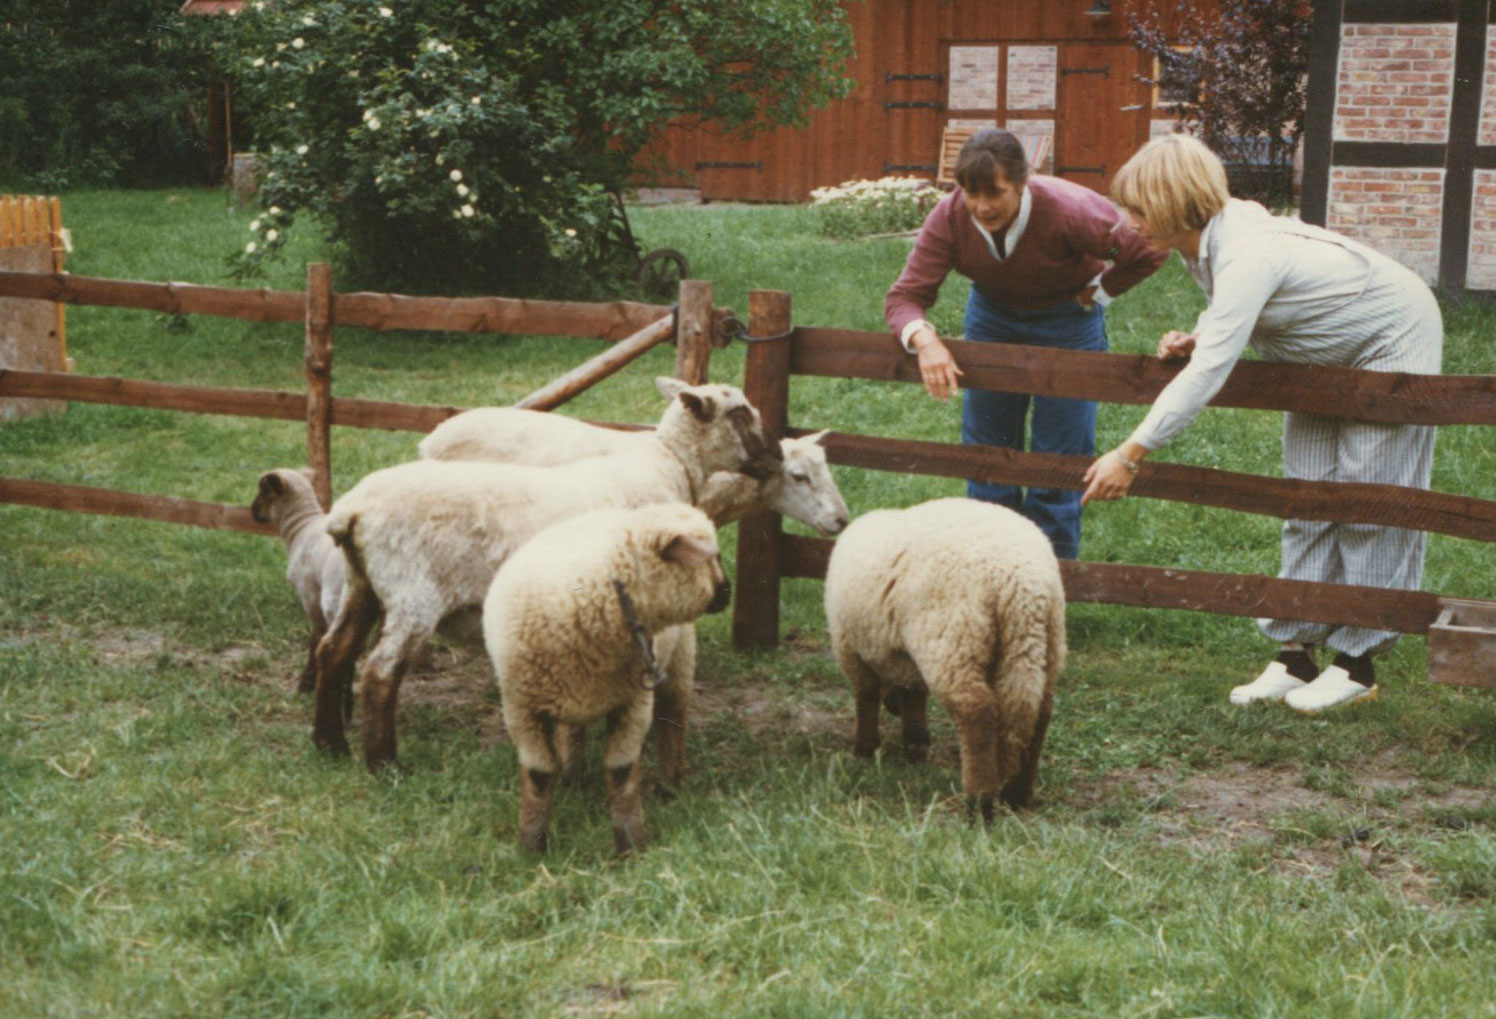 207-mom and Tina and the sheep